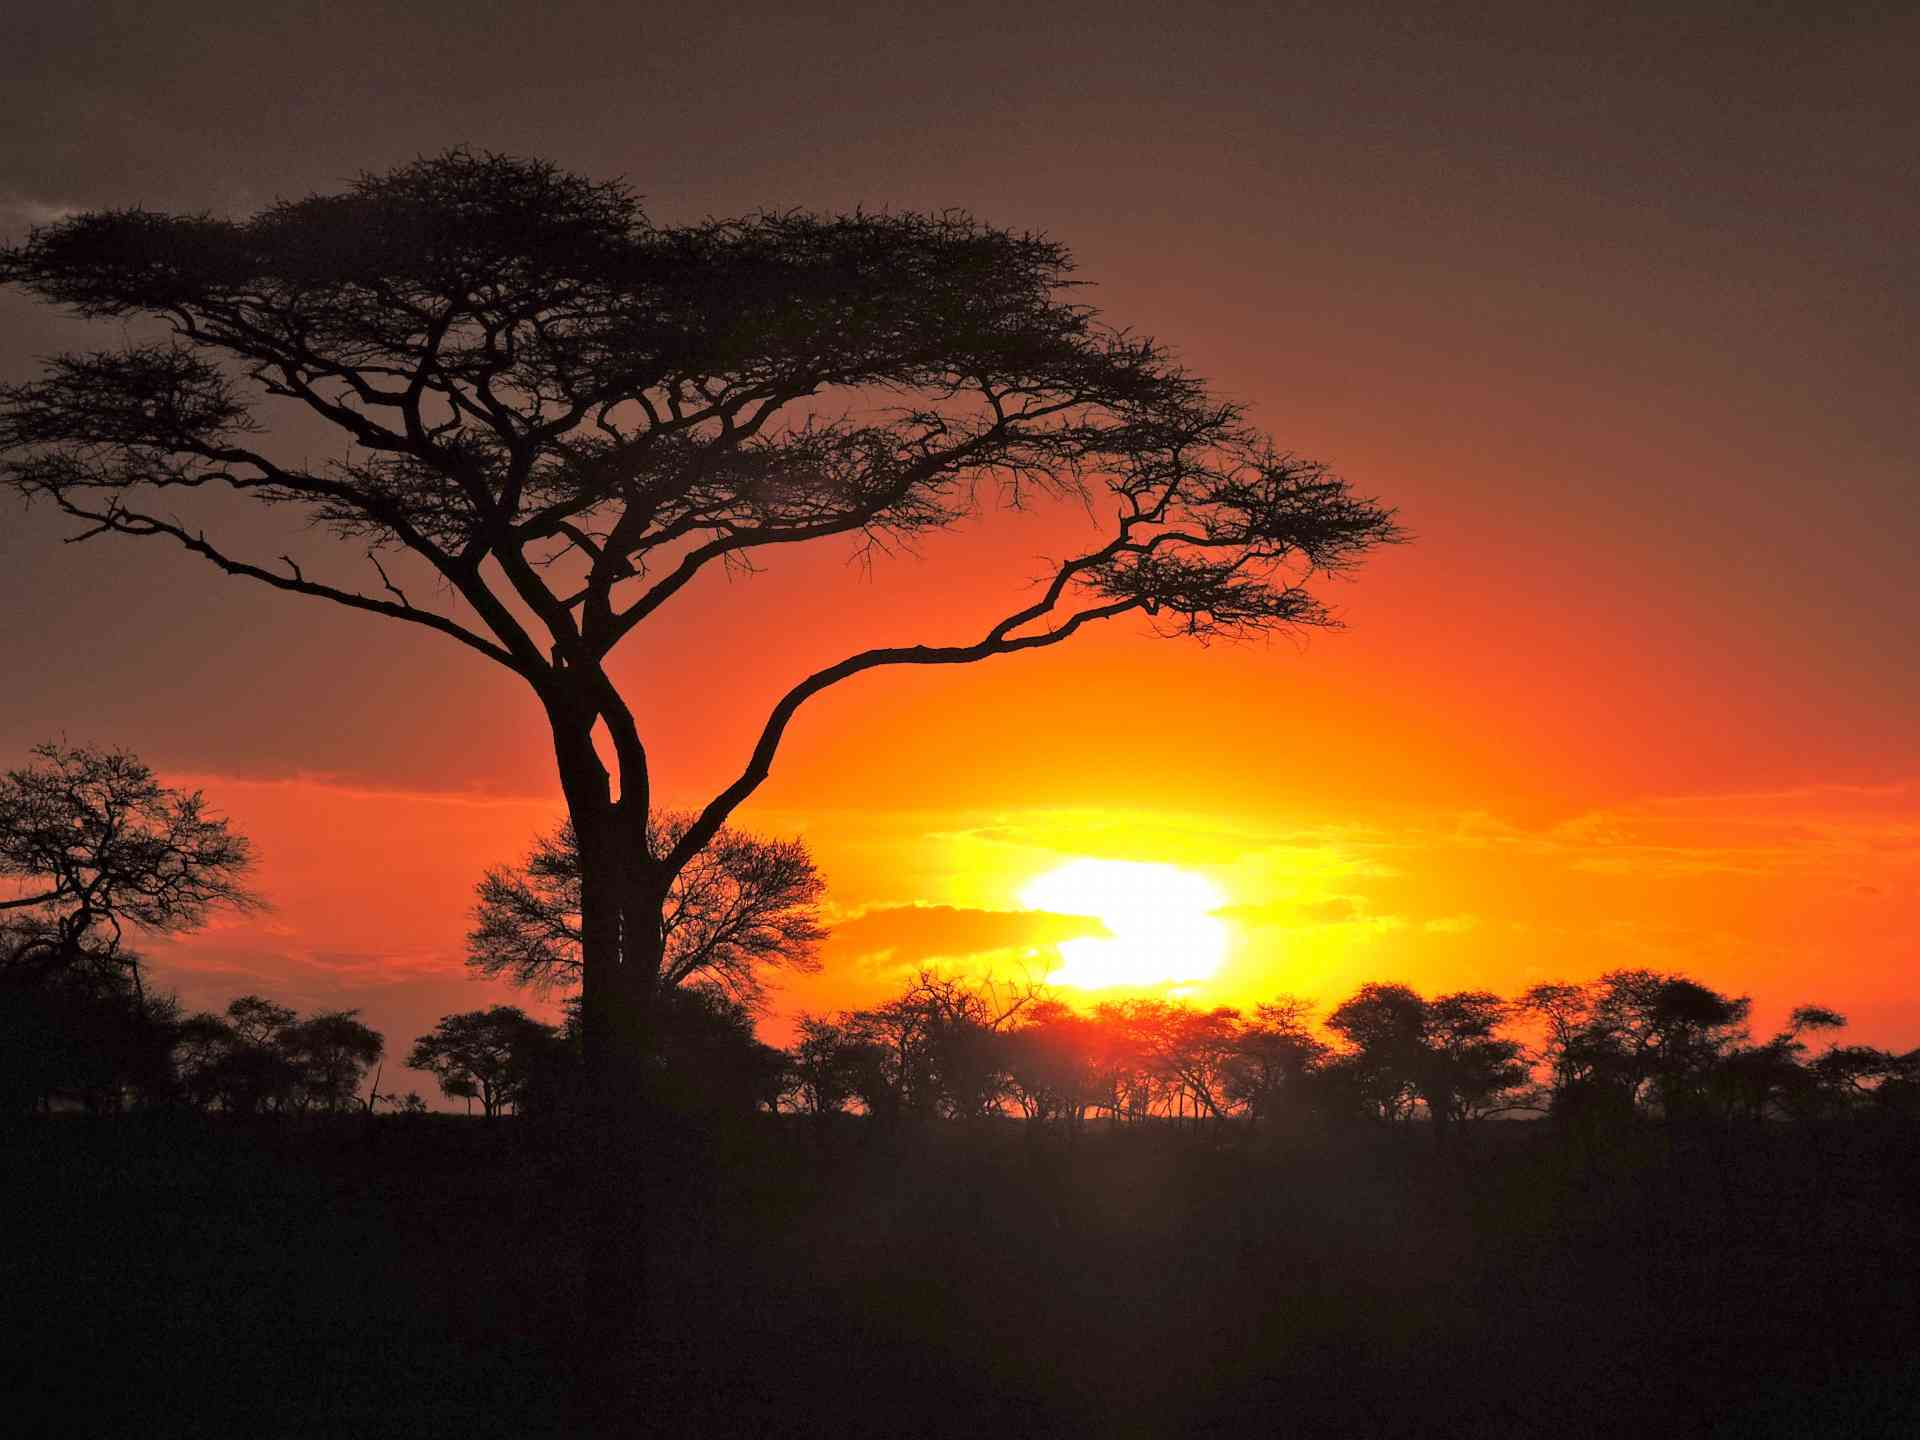 Sunset in Serengeti National Park, Tanzania by Zoe Francis